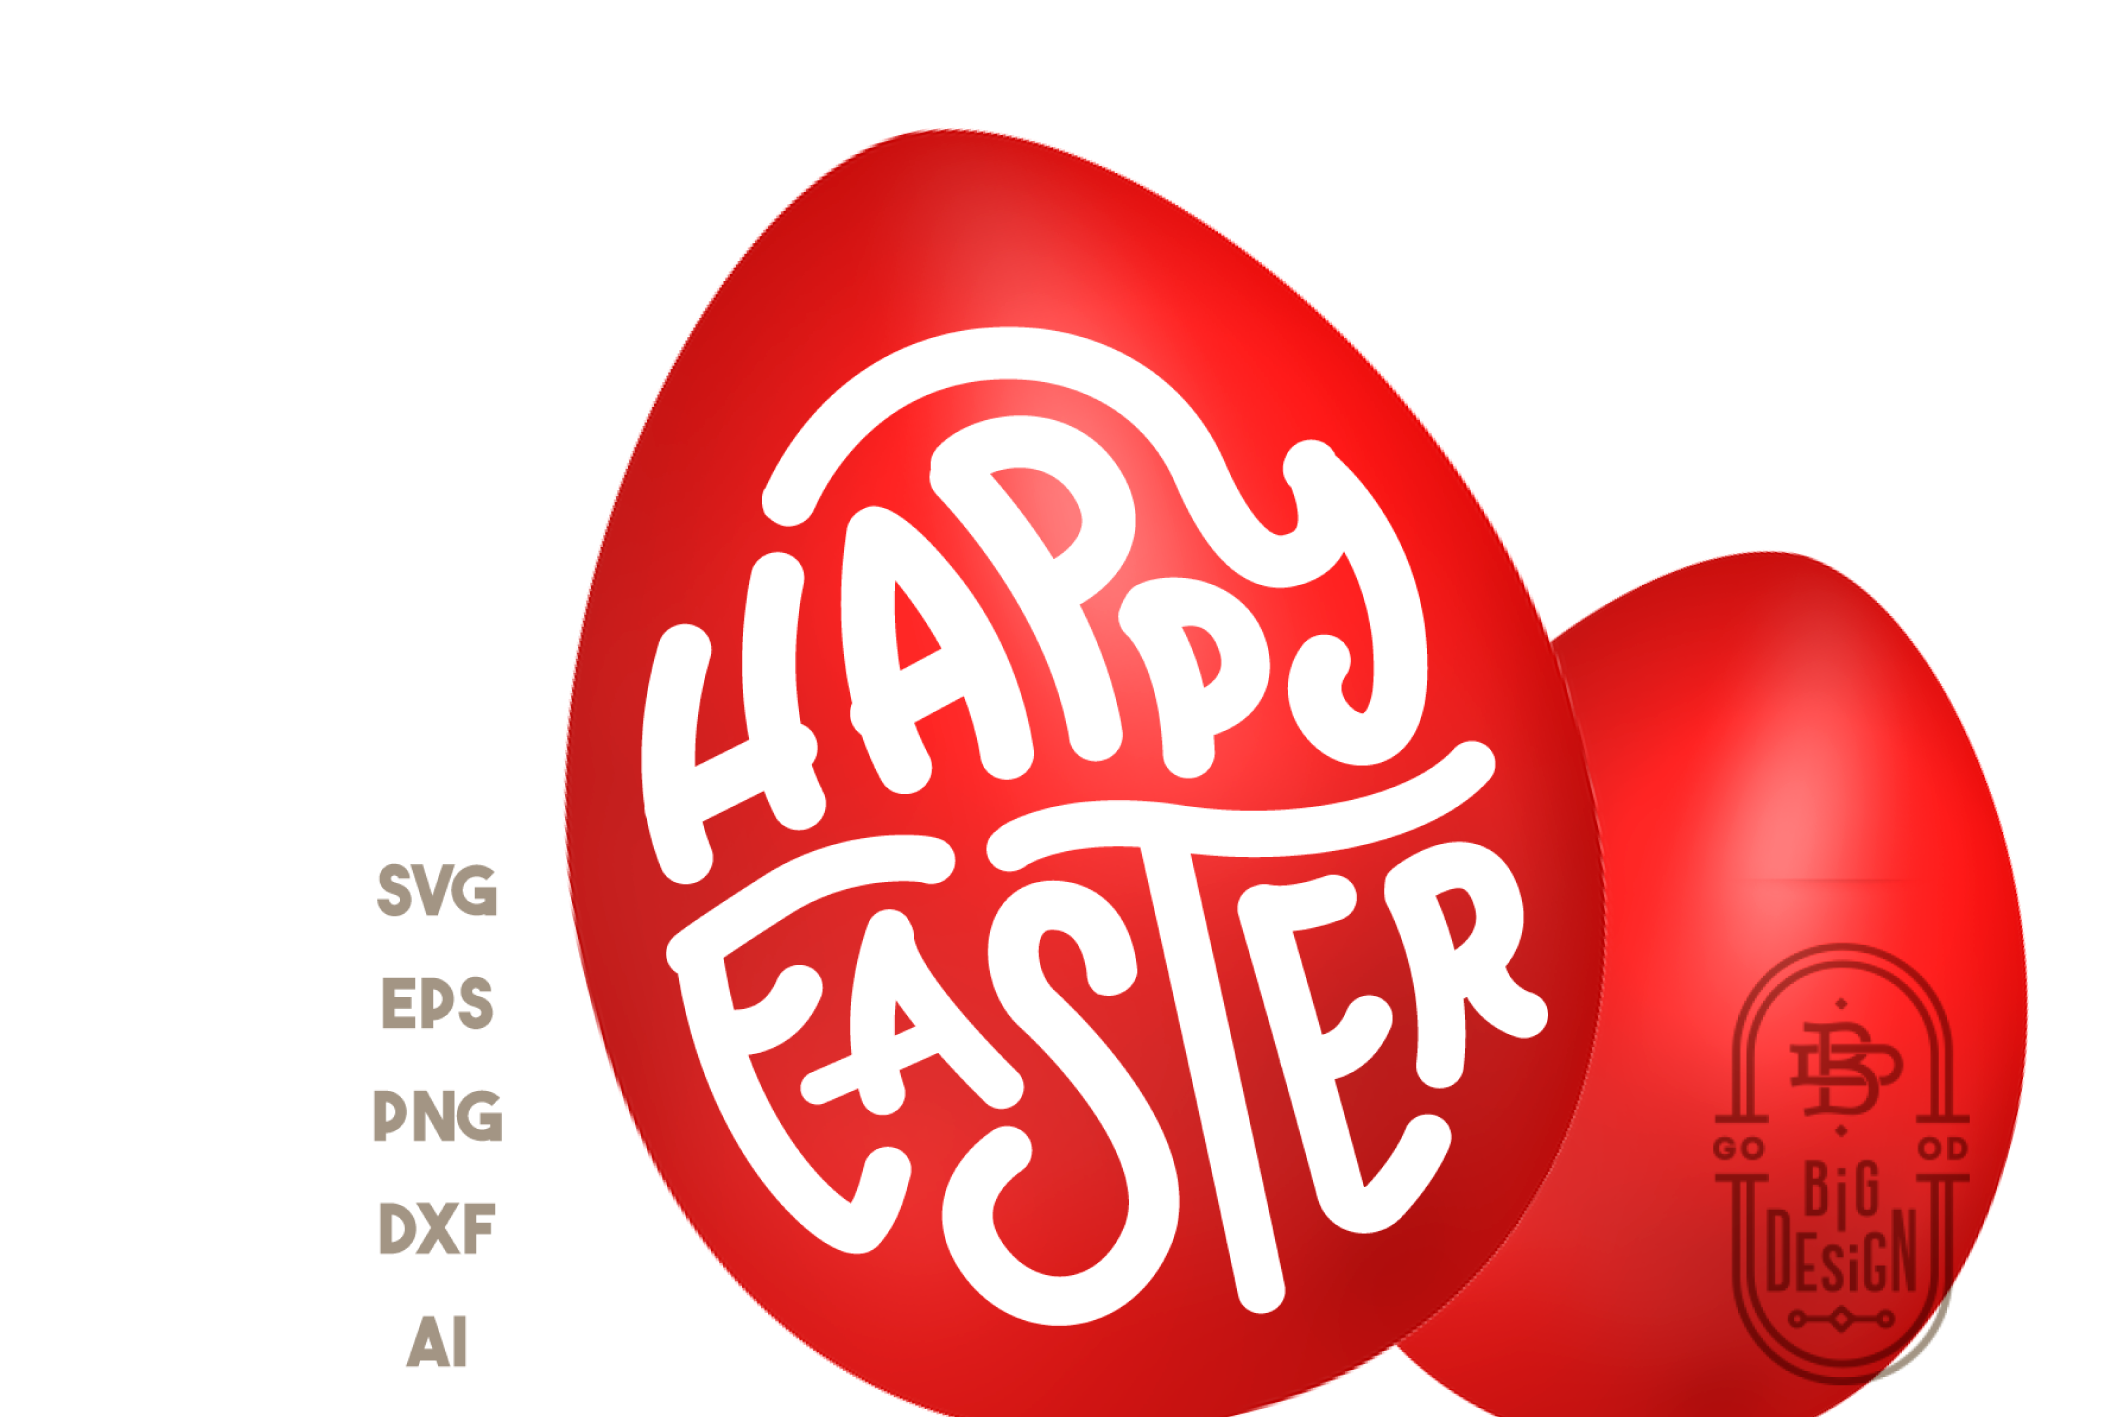 Happy Easter SVG - Easter Saying SVG Cut File example image 2